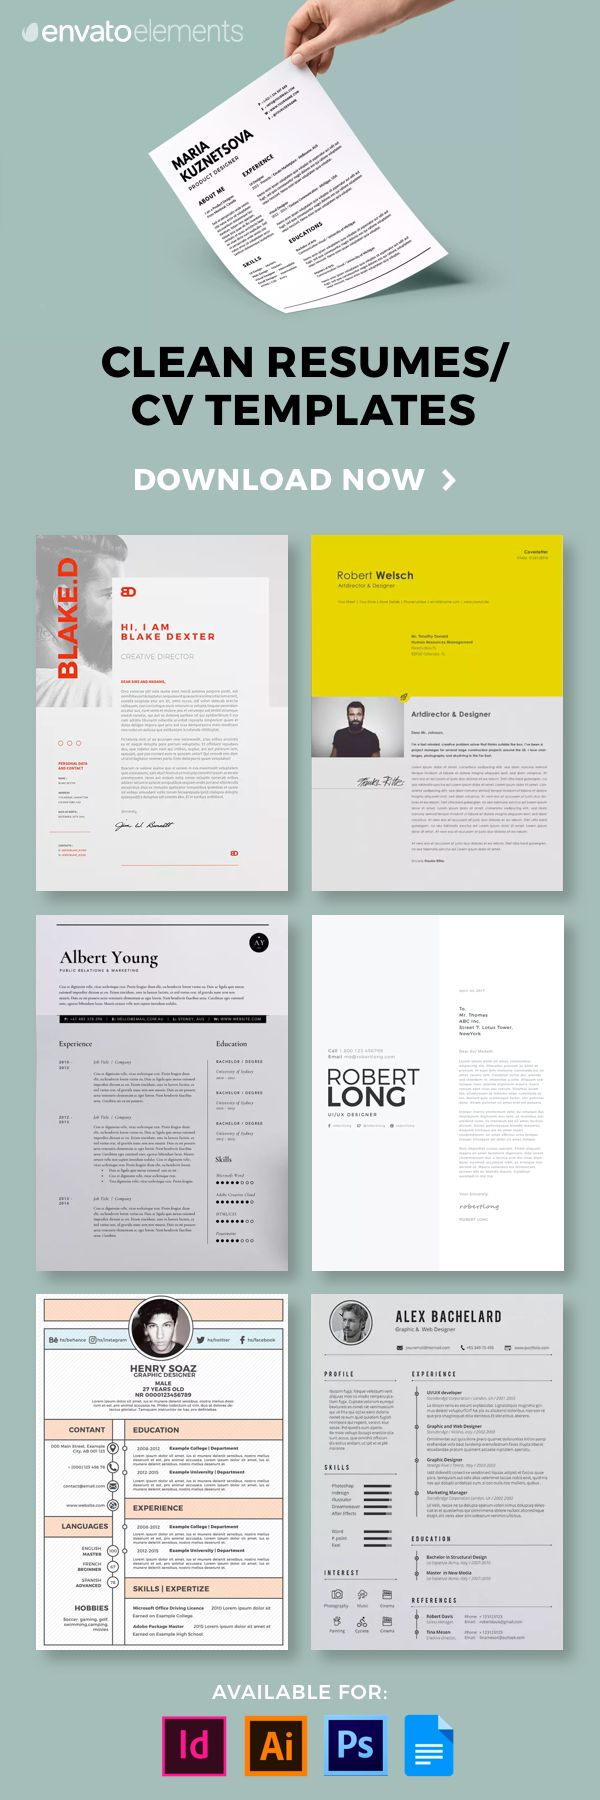 Landing Your Dream Job Starts With an Impressive Resume. Get Unlimited Downloads of 2018's Best Resume Templates And Start Your Future On the Right Foot!